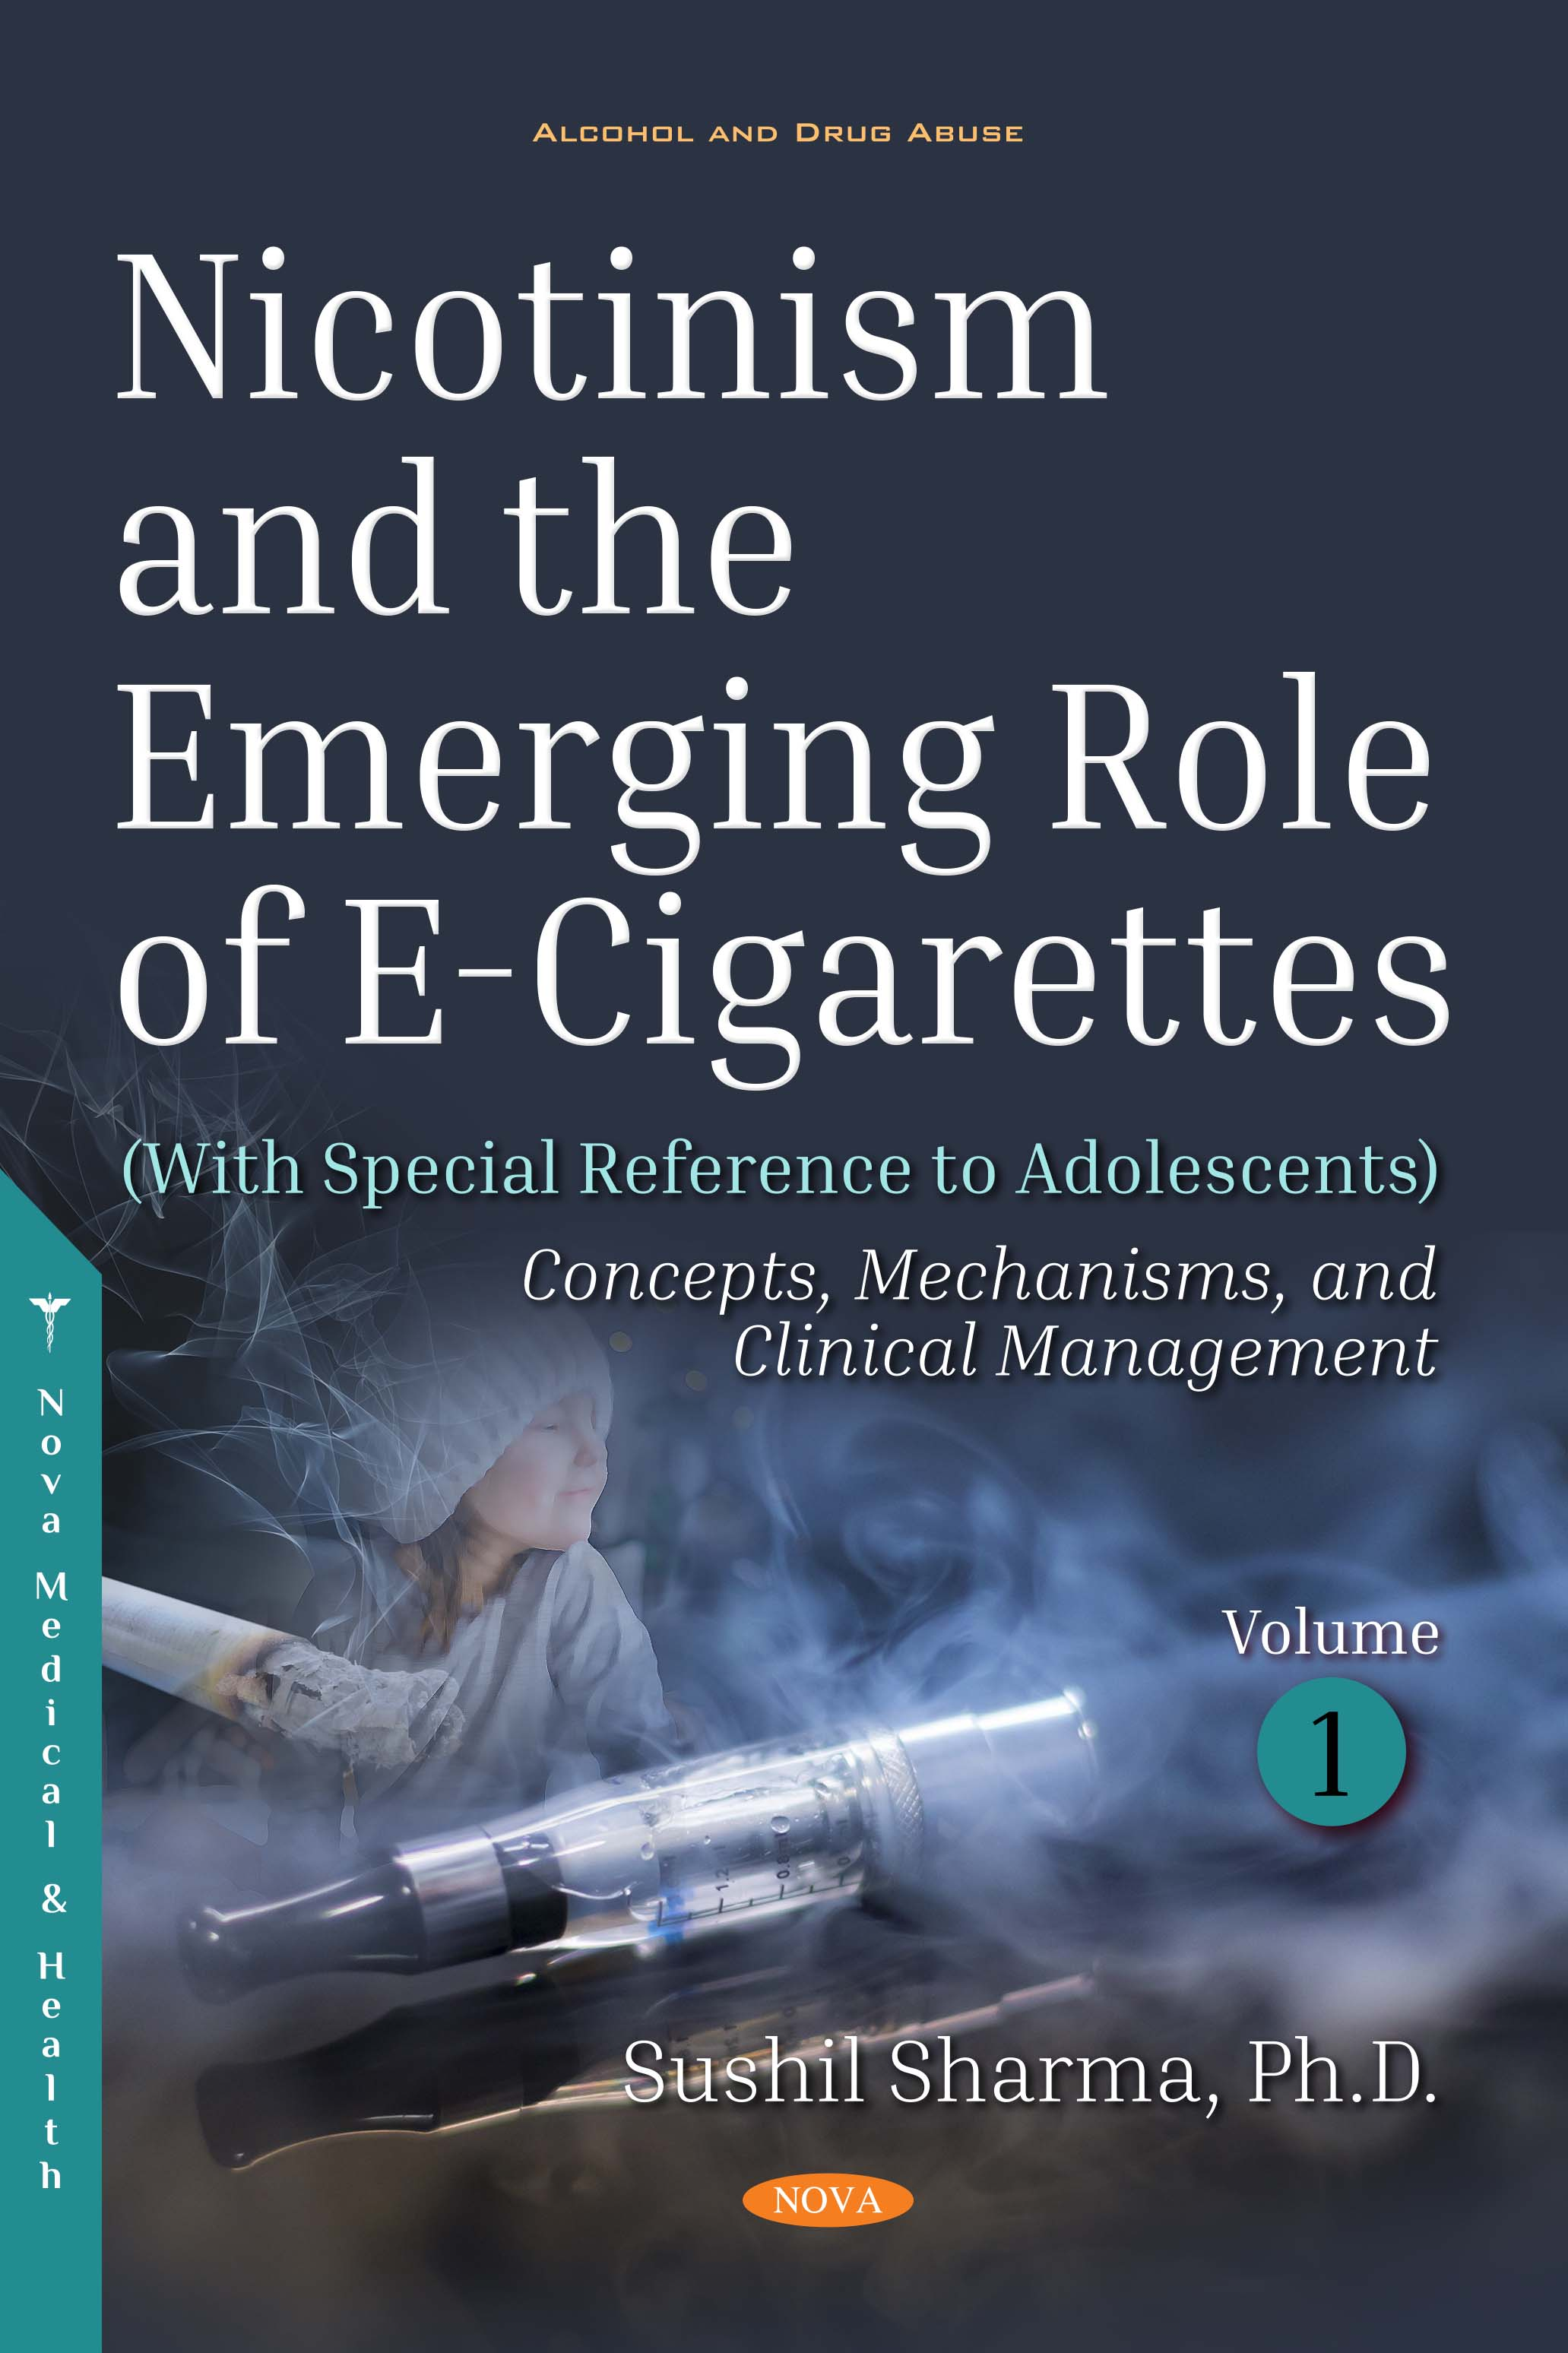 Occupational And Environmental Neurology 1e Ebook 1999 Chevy Tahoe Power Steering Pump Mounting Diagramw Acoem Array Nicotinism The Emerging Role Of E Cigarettes With Special Rh Novapublishers Com